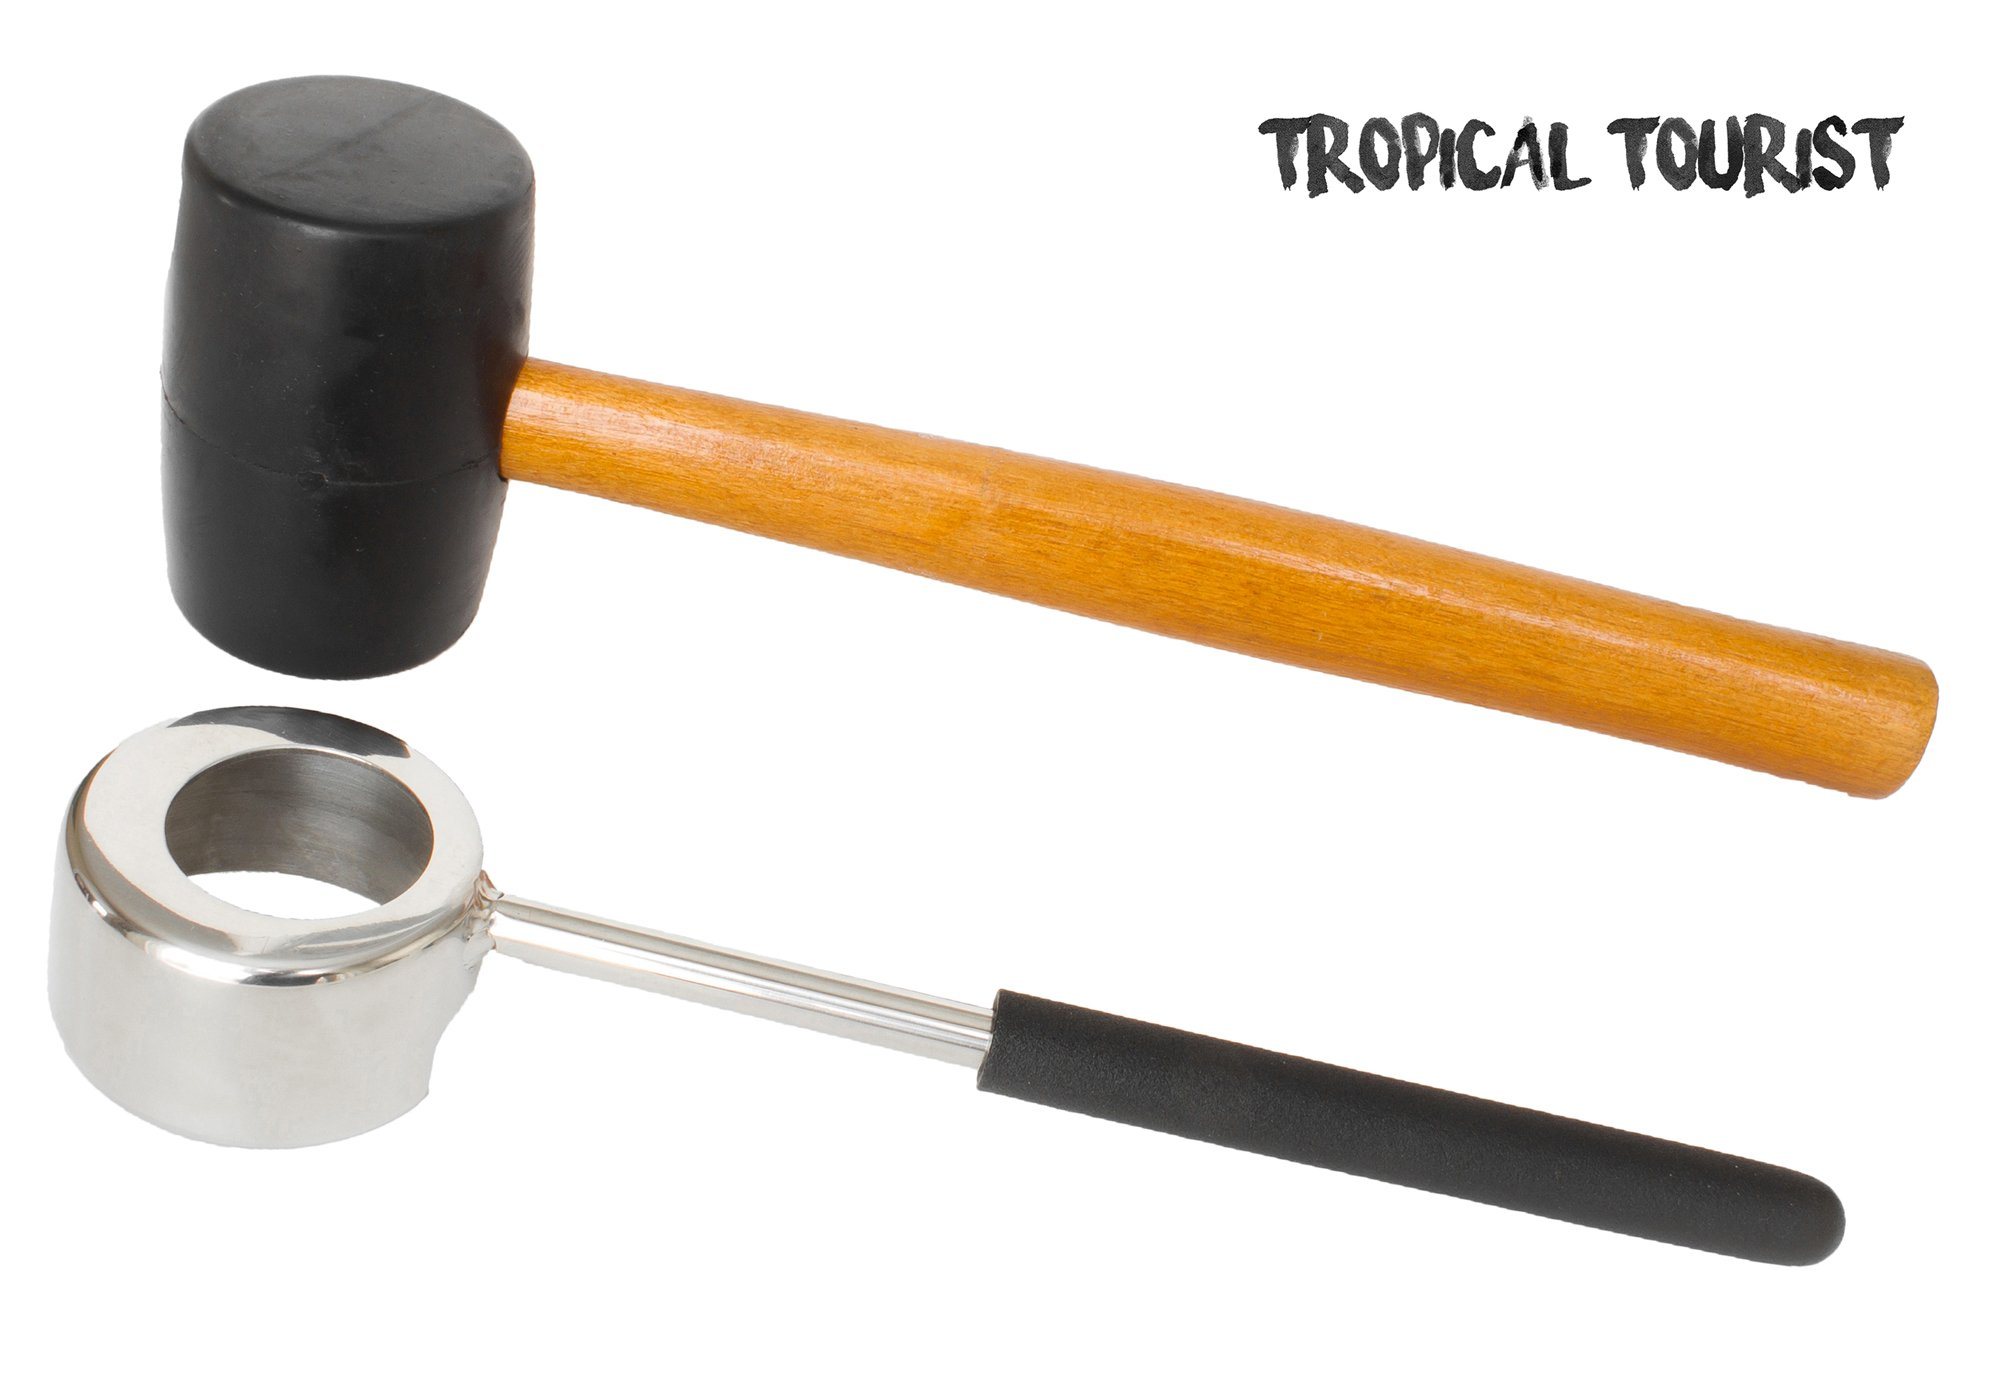 Coconut Opener Tool Set by Tropical Tourist - Food Grade Stainless Steel Opener with Wooden Mallet for Young Coconuts - Rubber handle grip - Easy, Safe & Long-Lasting Coconut Opener Design